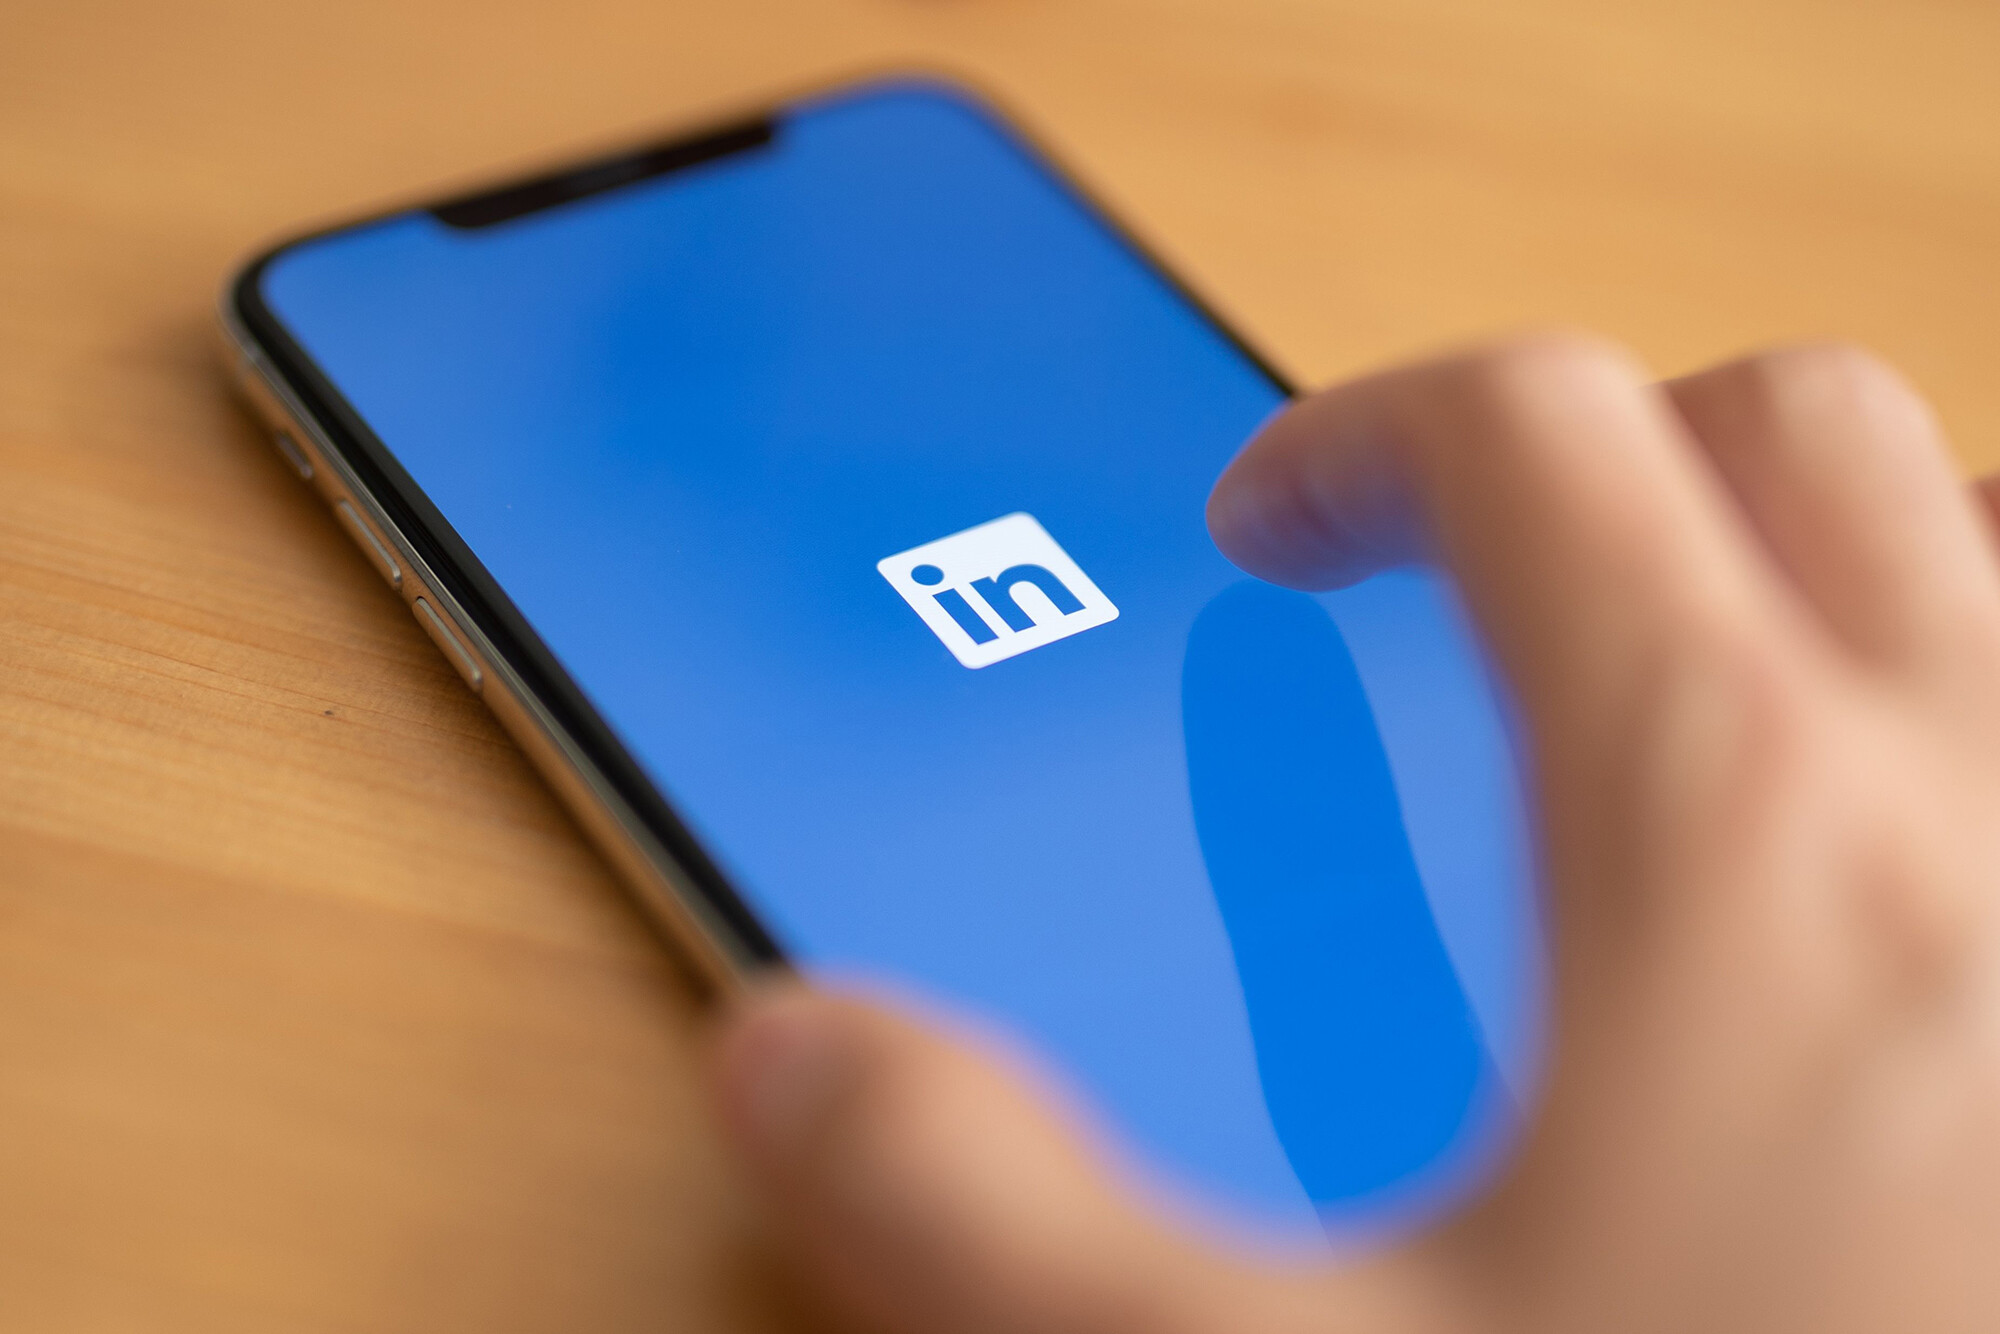 <i>Hayoung Jeon/EPA-EFE/Shutterstock</i><br/>LinkedIn will shut down the local version of its service in China because of a significantly more challenging operating environment and greater compliance requirements in China